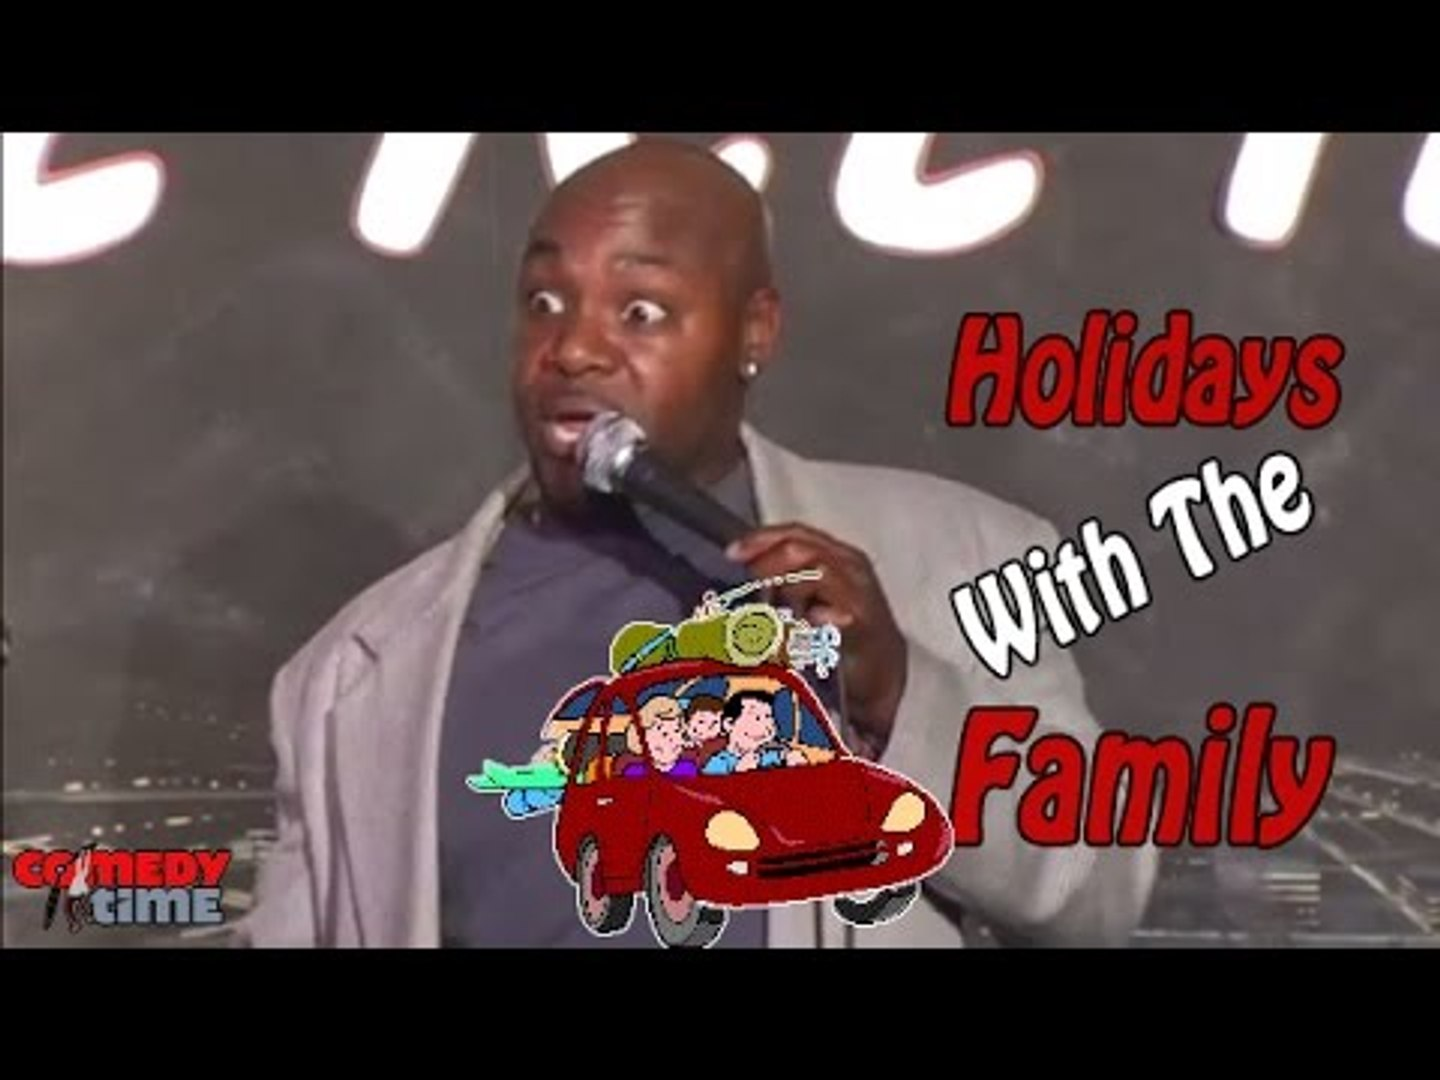 Holidays With the Family - Comedy Time